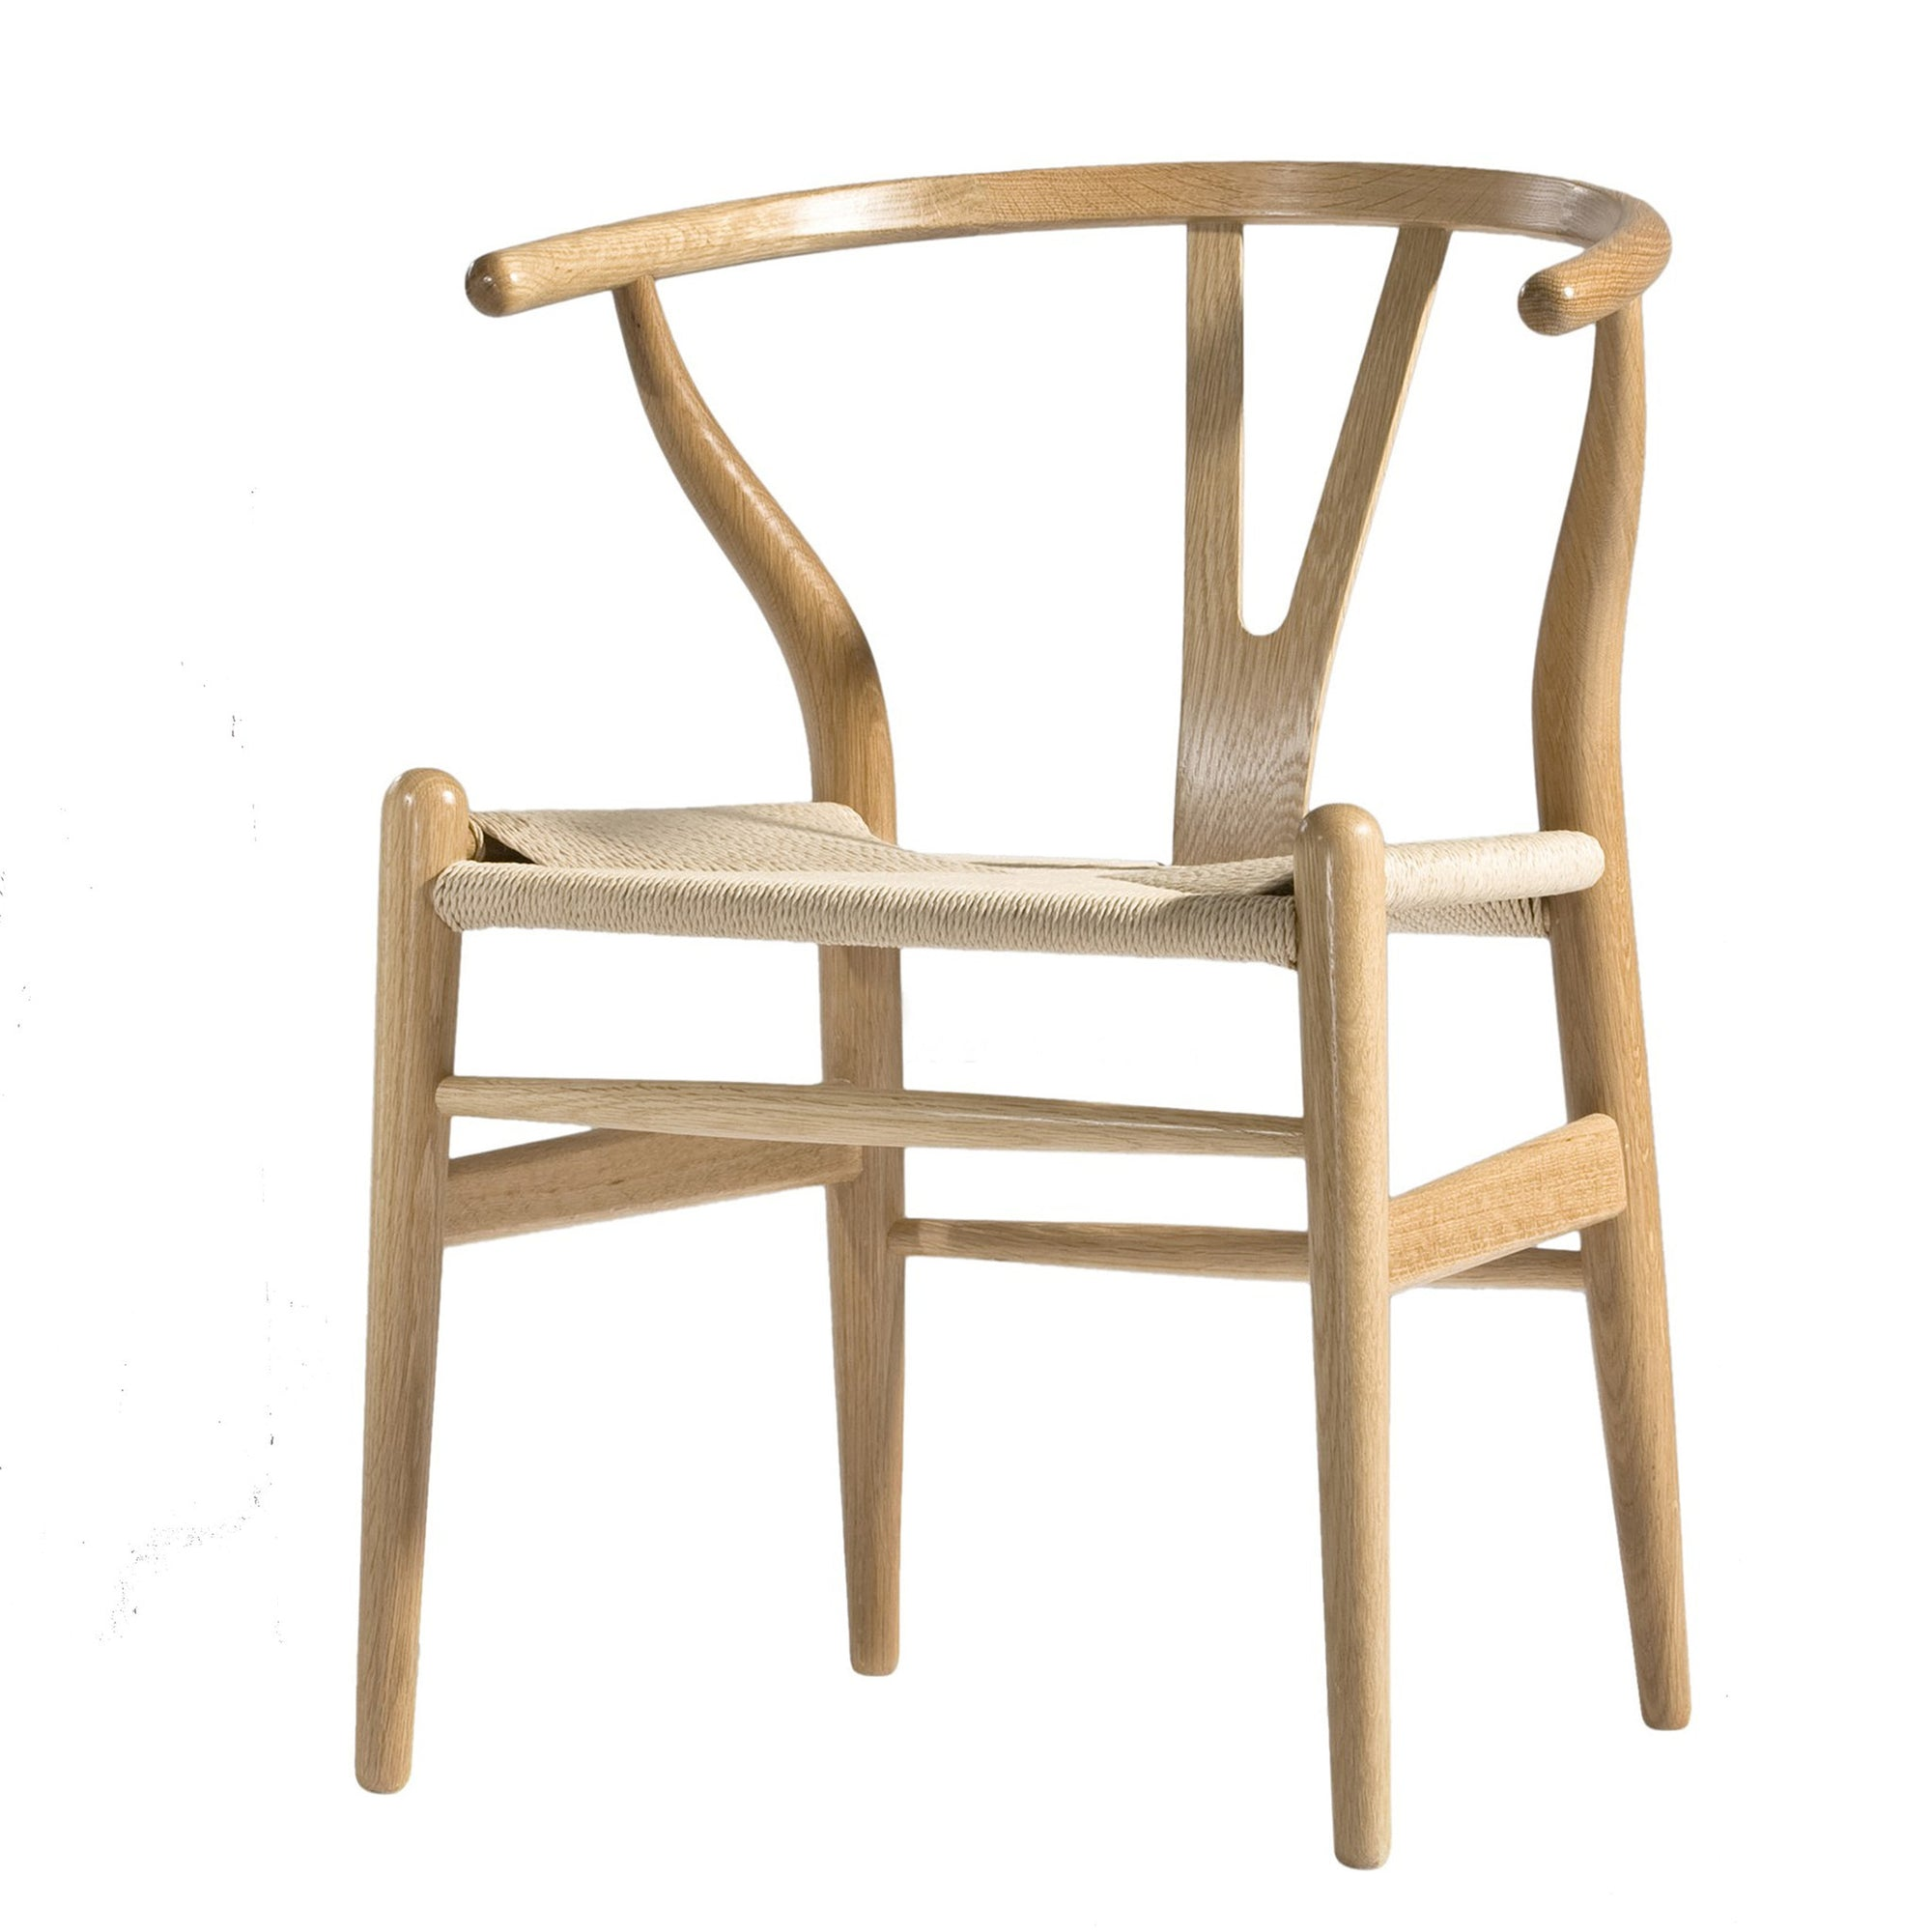 Dining Chair Solid ash wood and Natural Cord Seat WS-001A-N - ebarza